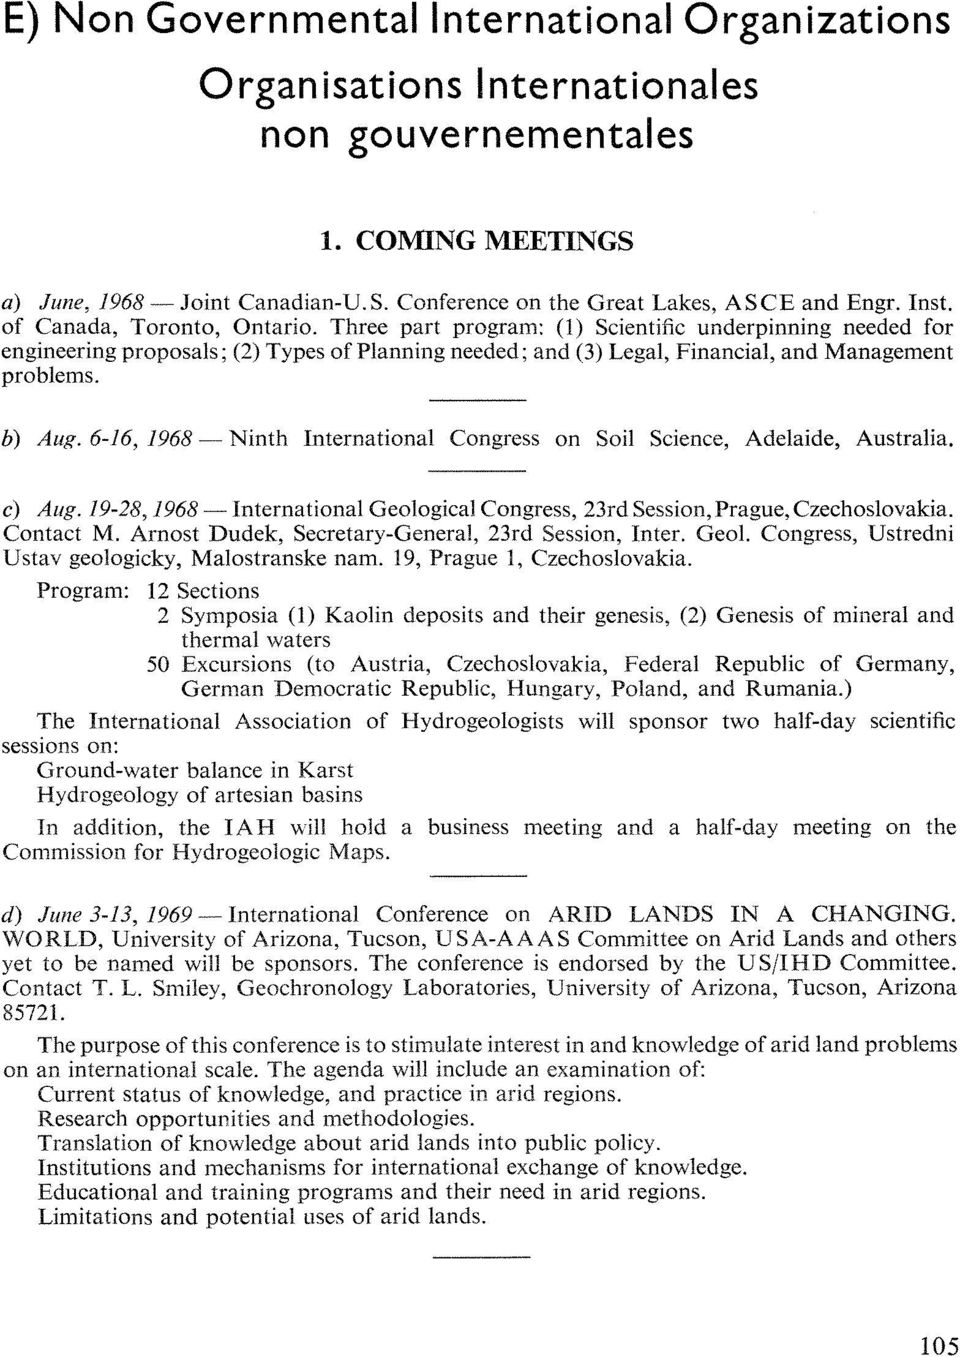 b) Aug. 6-16, 1968 Ninth International Congress on Soil Science, Adelaide, Australia. c) Aug. 19-28,1968 International Geological Congress, 23rd Session, Prague, Czechoslovakia. Contact M.